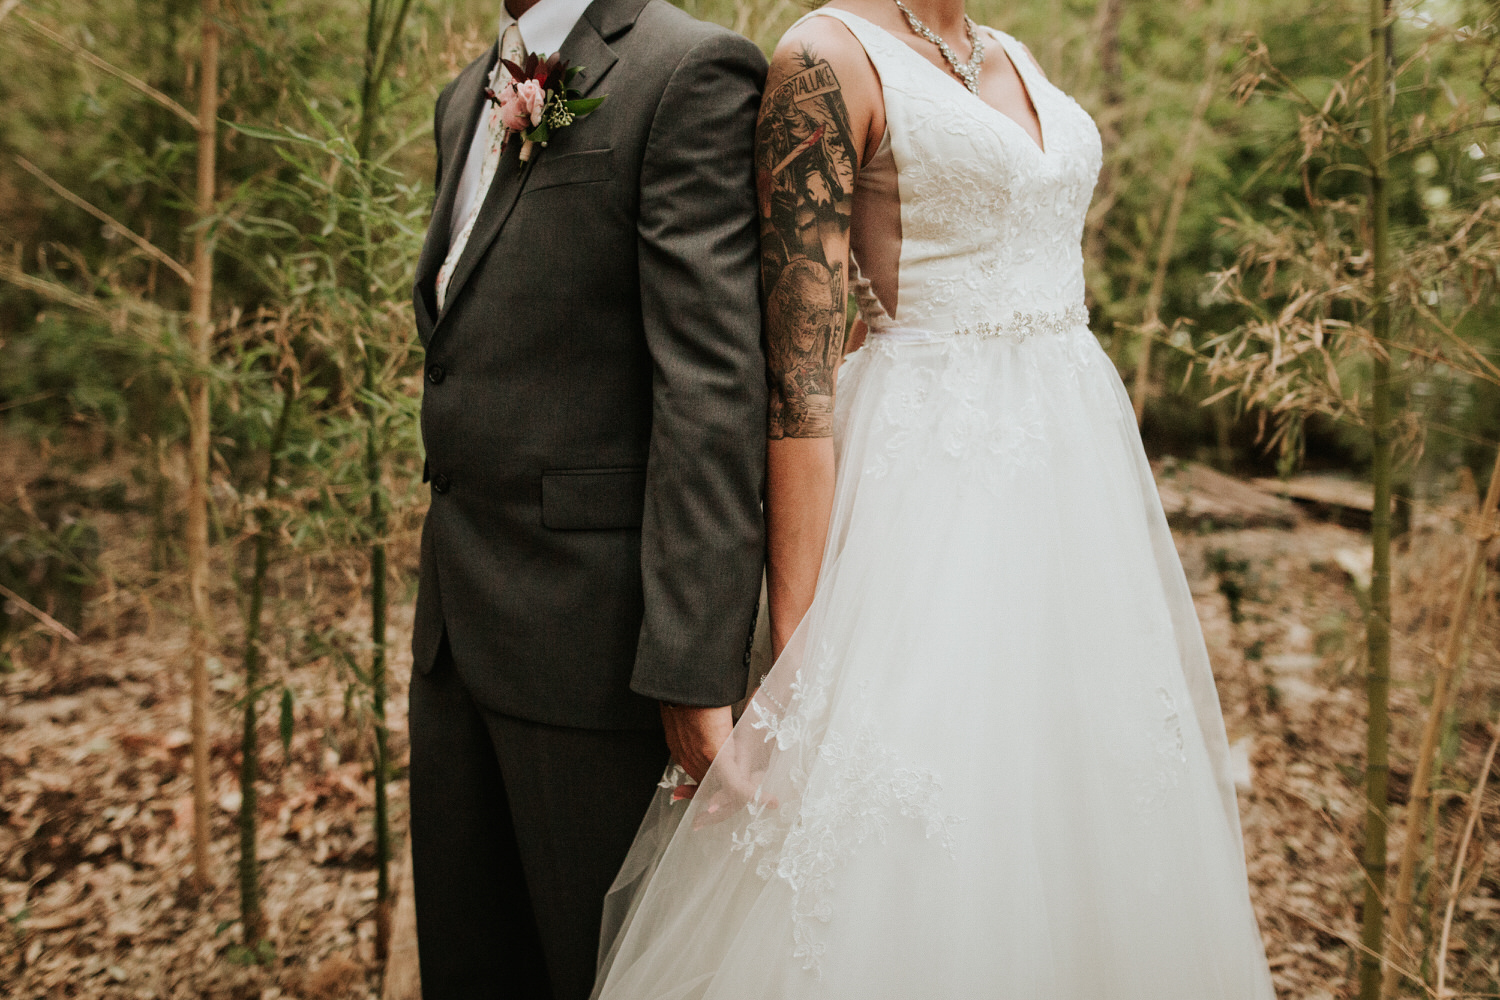 Bride and groom at The Sanctuary wedding